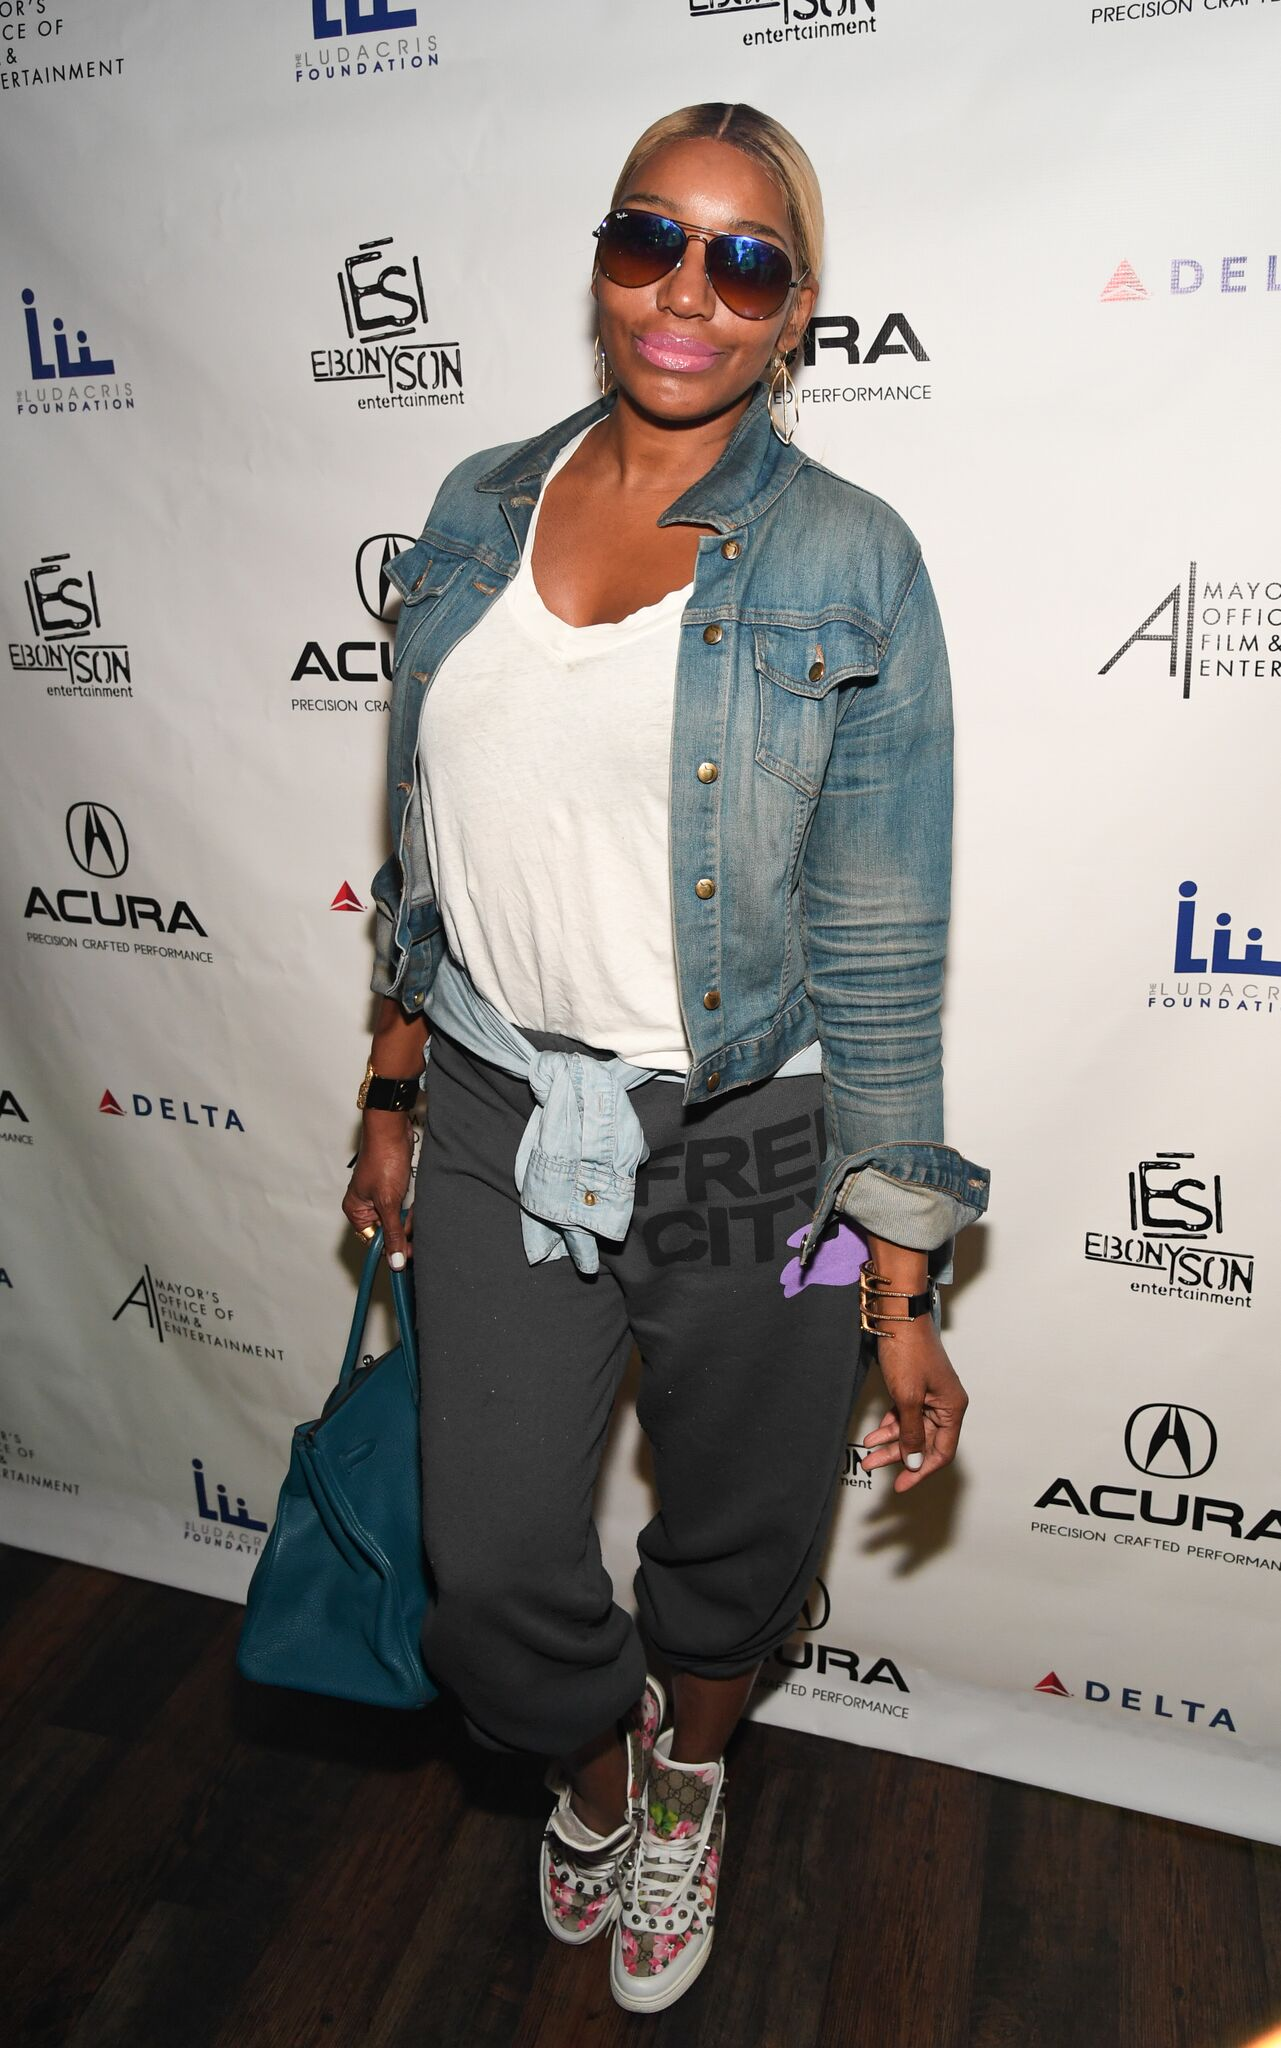 Telelvision personality NeNe Leakes at 2017 Ludaday Weekend Celebrity Bowling Tournament at Bowlmor Lanes | Getty Images